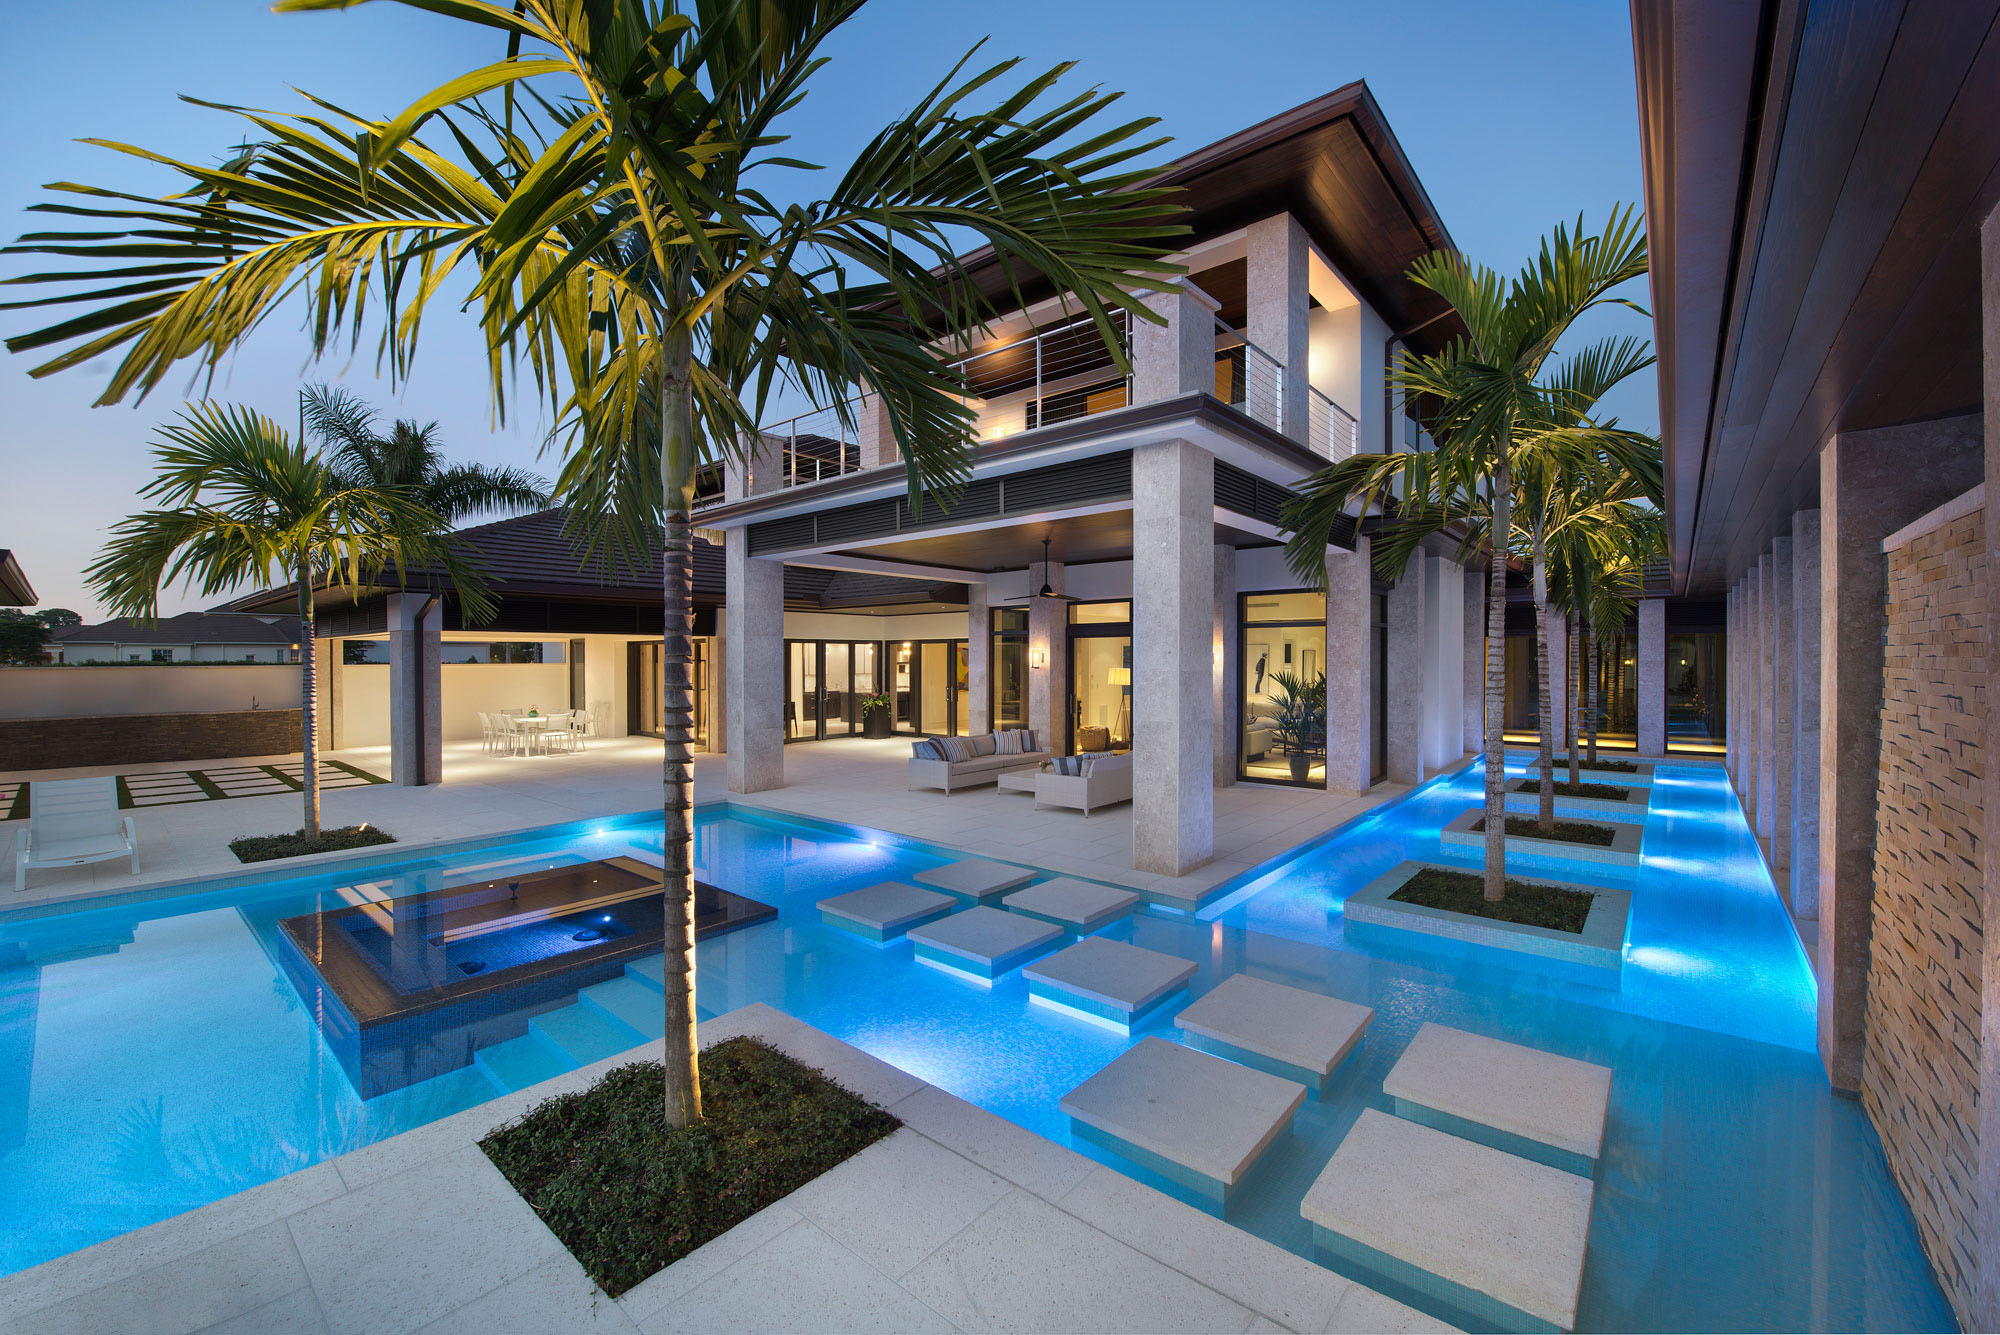 Custom dream home in florida with elegant swimming pool for Custom dream houses